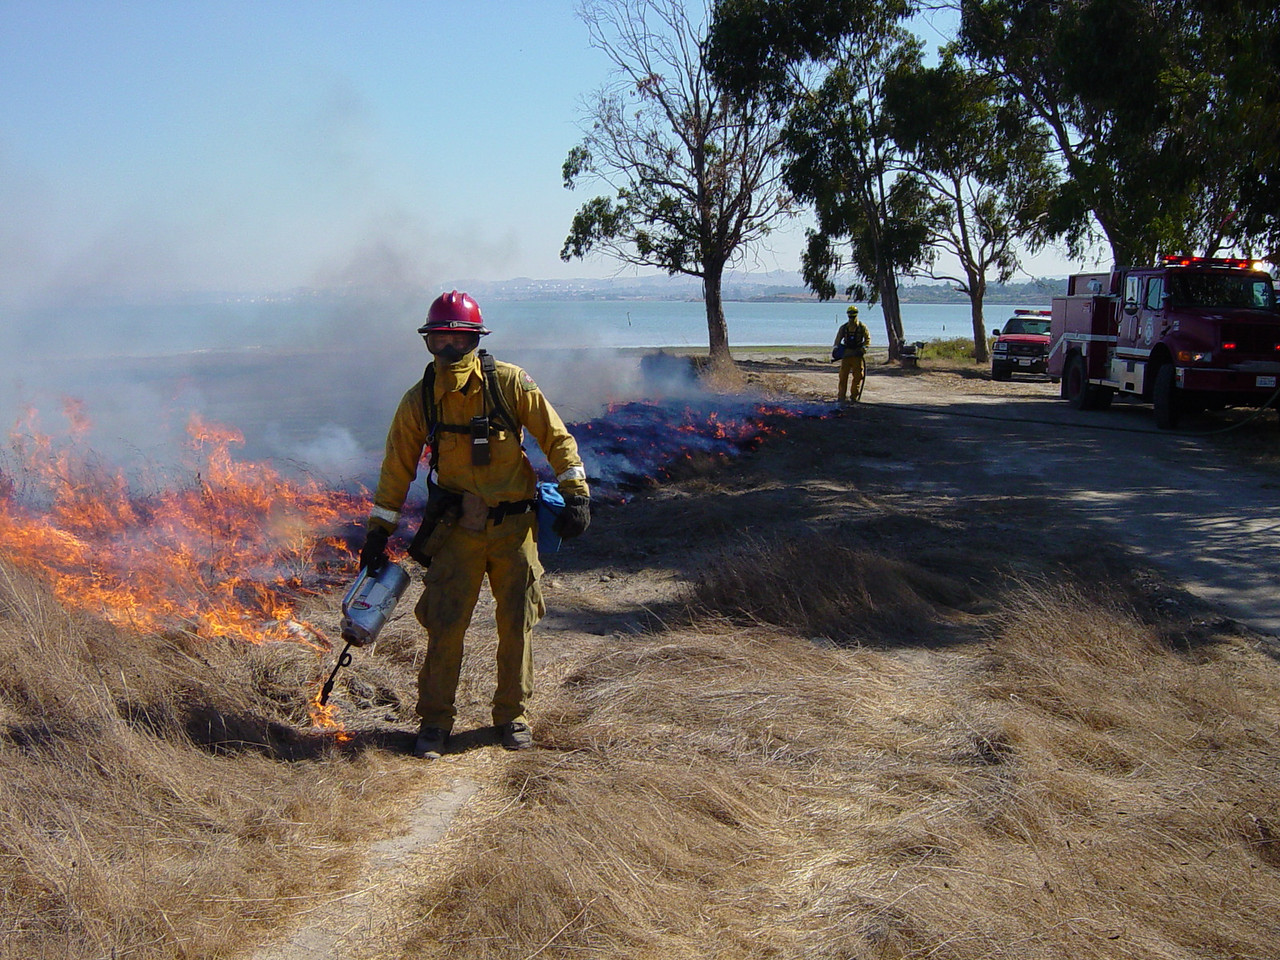 Prescribed burning at Point Pinole